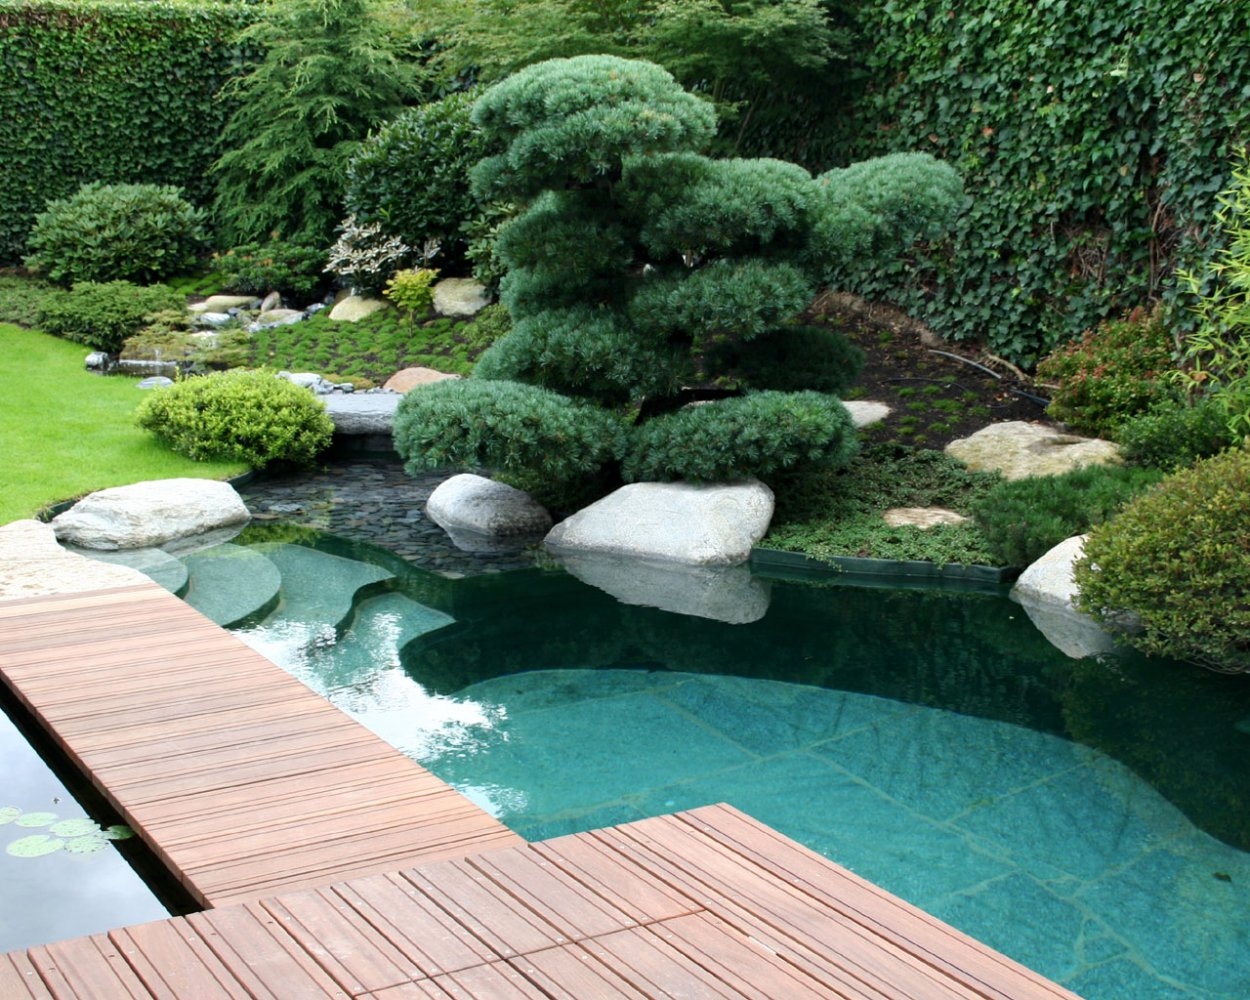 natural pools wasser garten kirchner. Black Bedroom Furniture Sets. Home Design Ideas